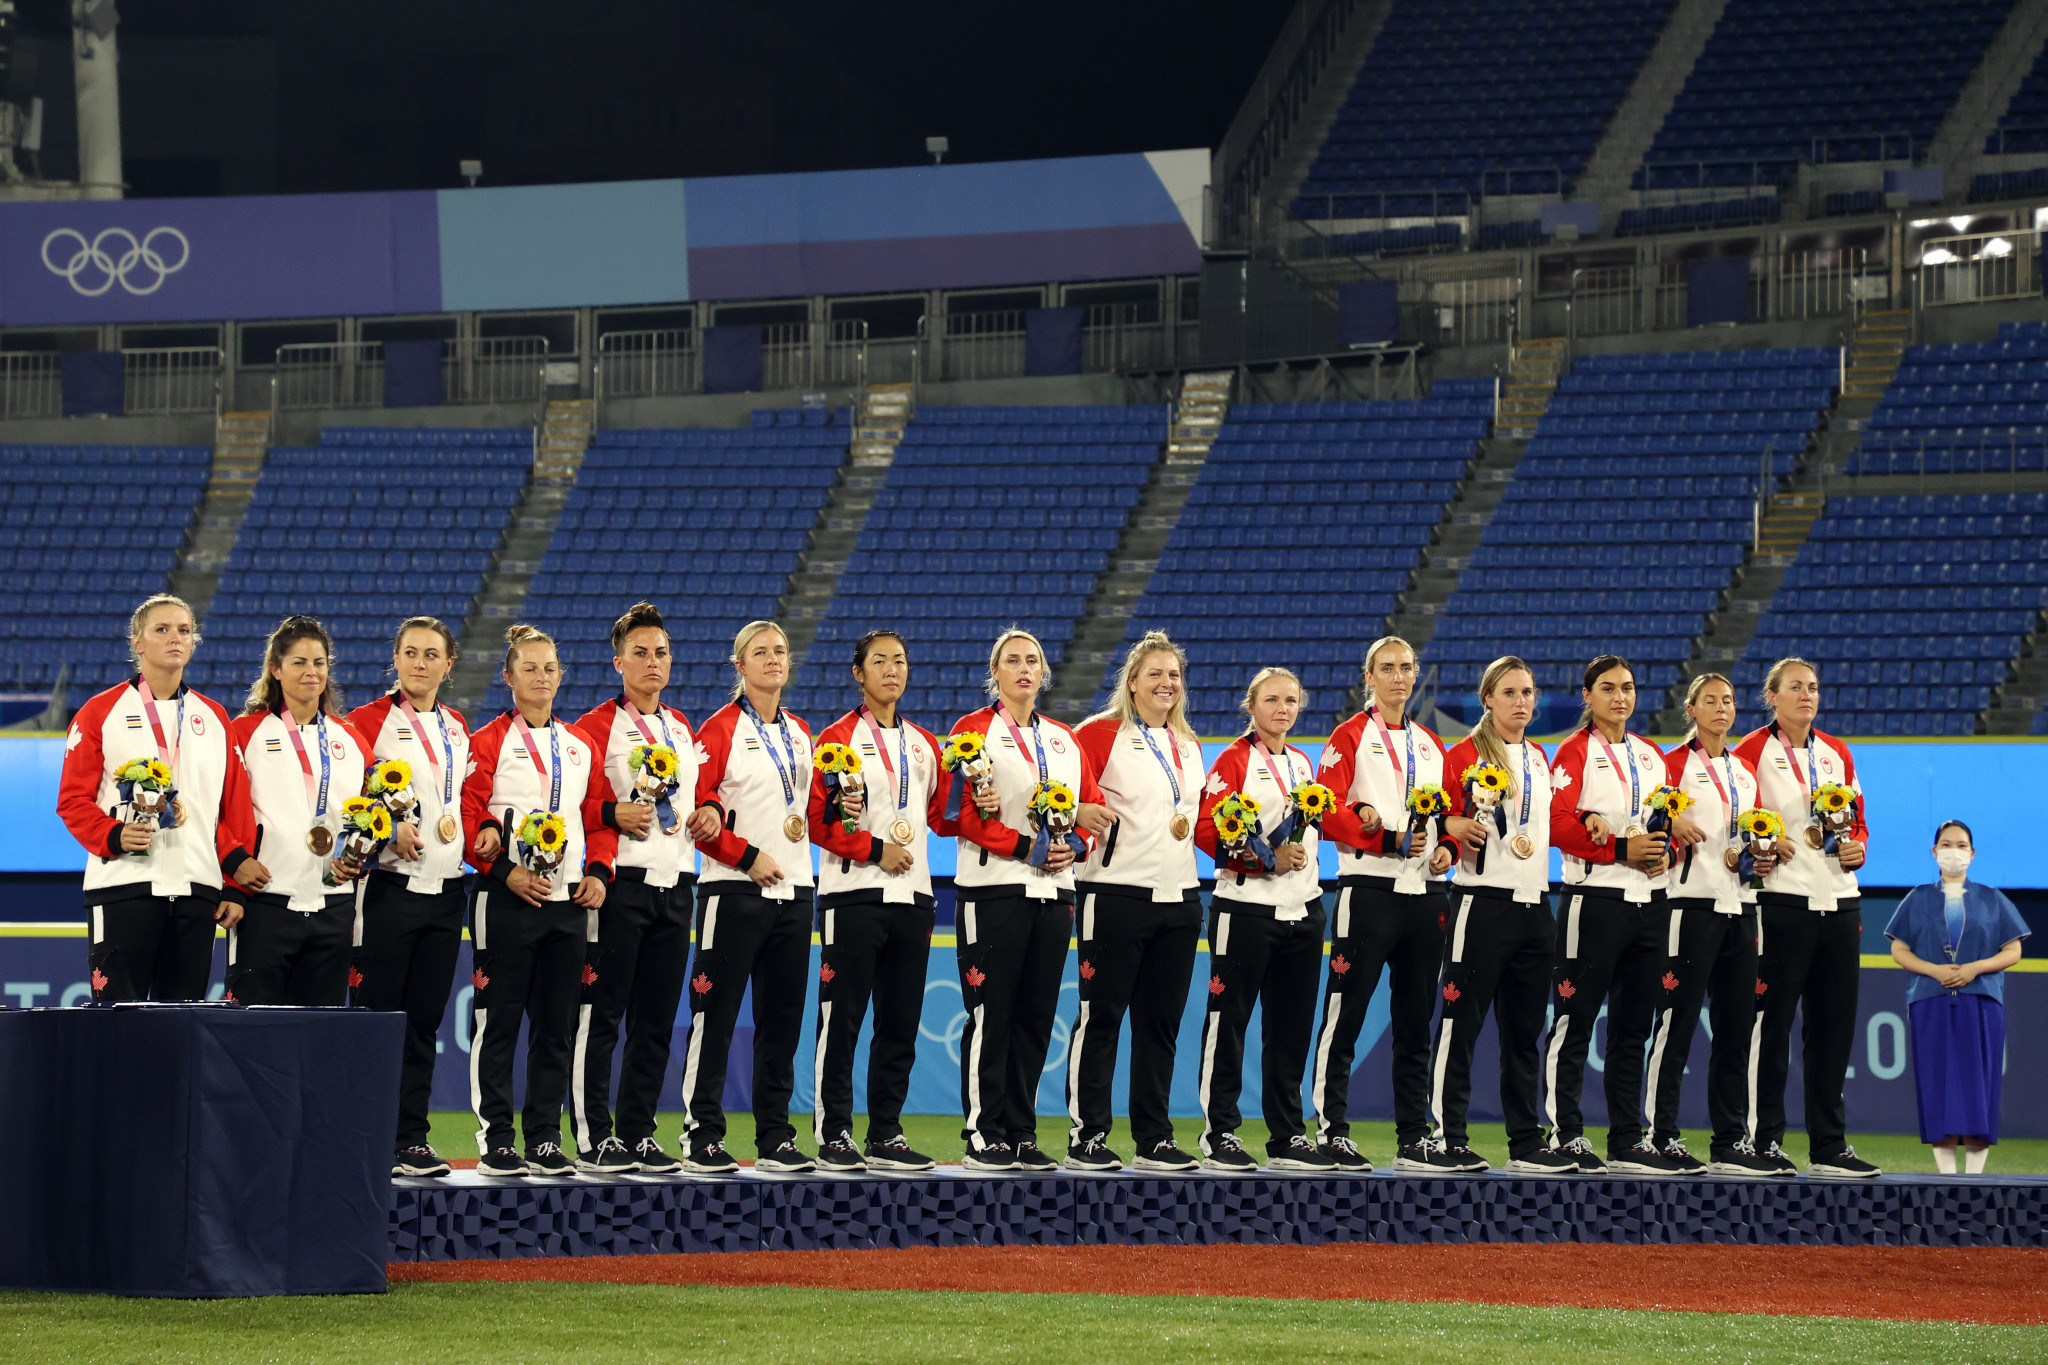 Canada won bronze in softball at Tokyo 2020 ©Getty Images